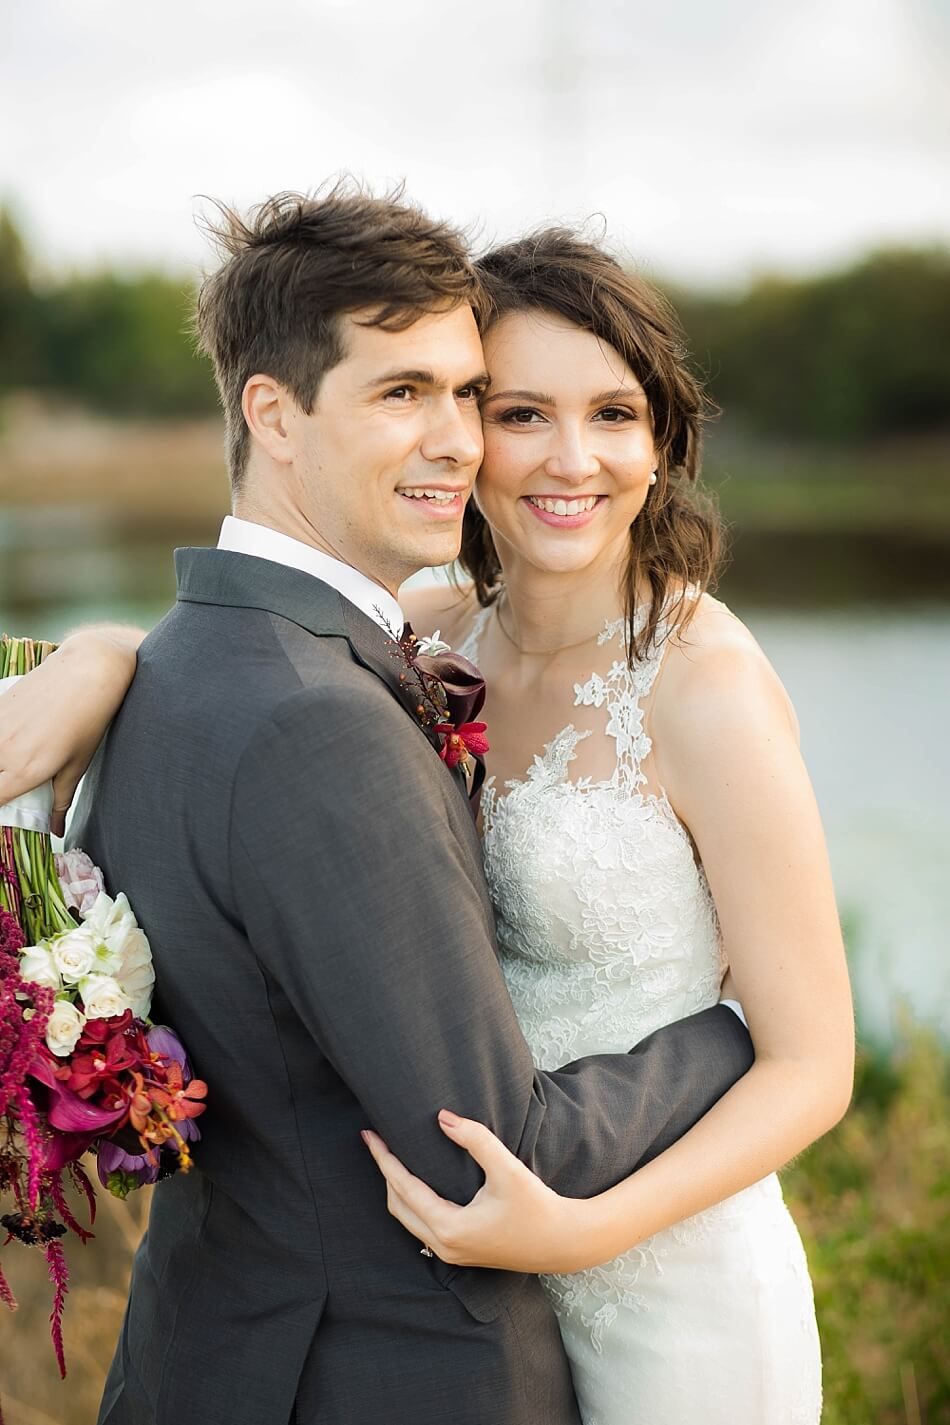 nikki-meyer_landtscap_stellenbosch_wedding_photographer_057